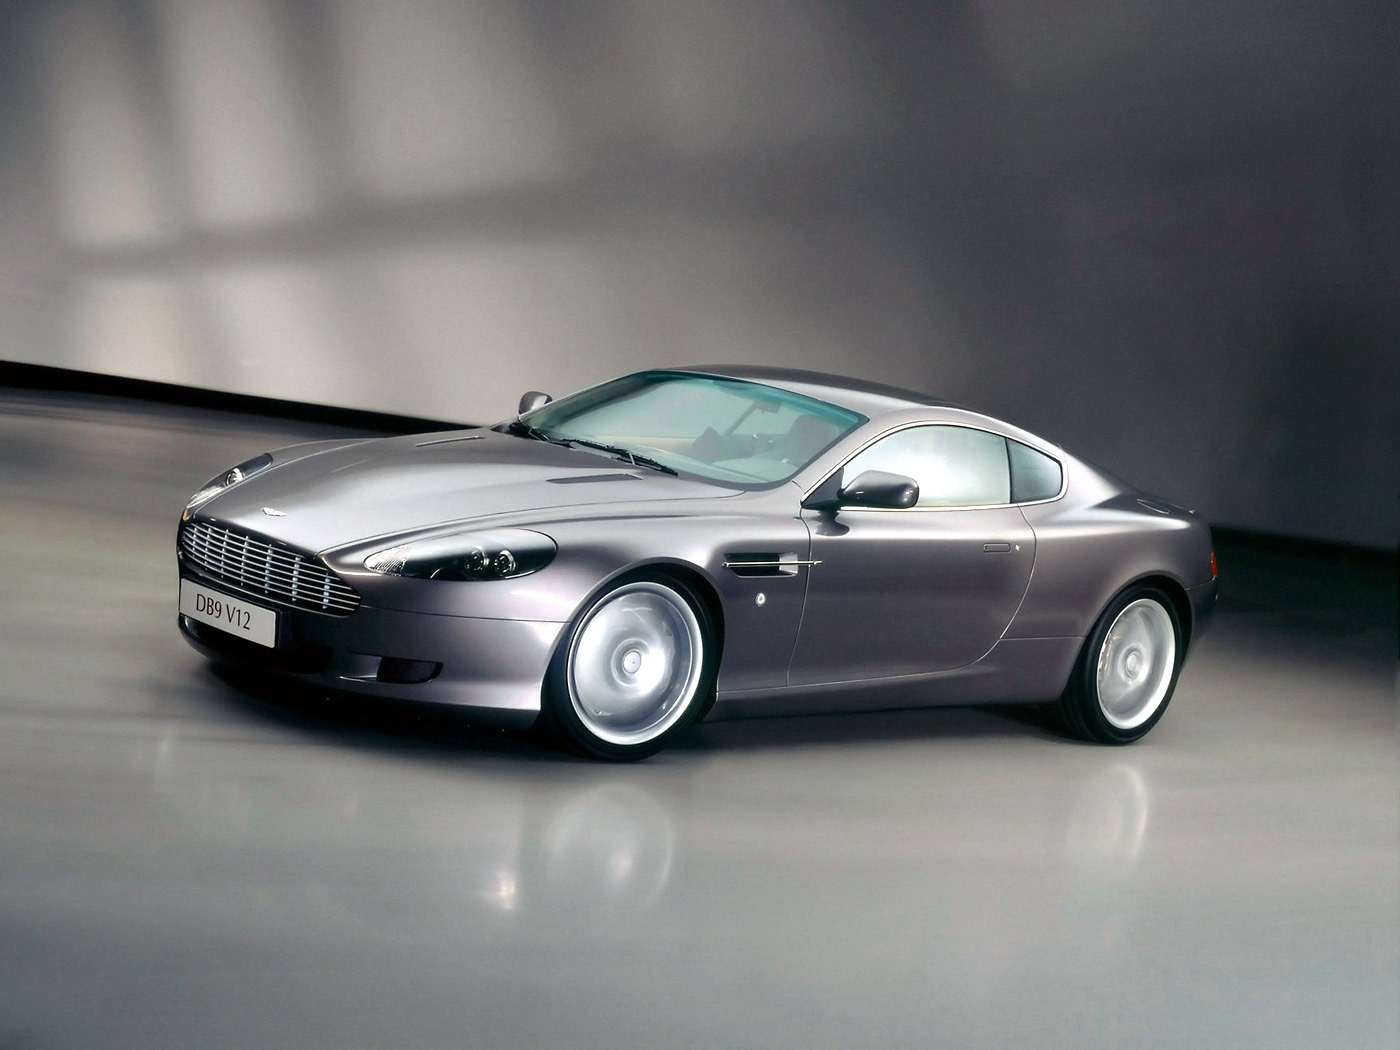 ASTON MARTIN DB9 V12  CAR 2